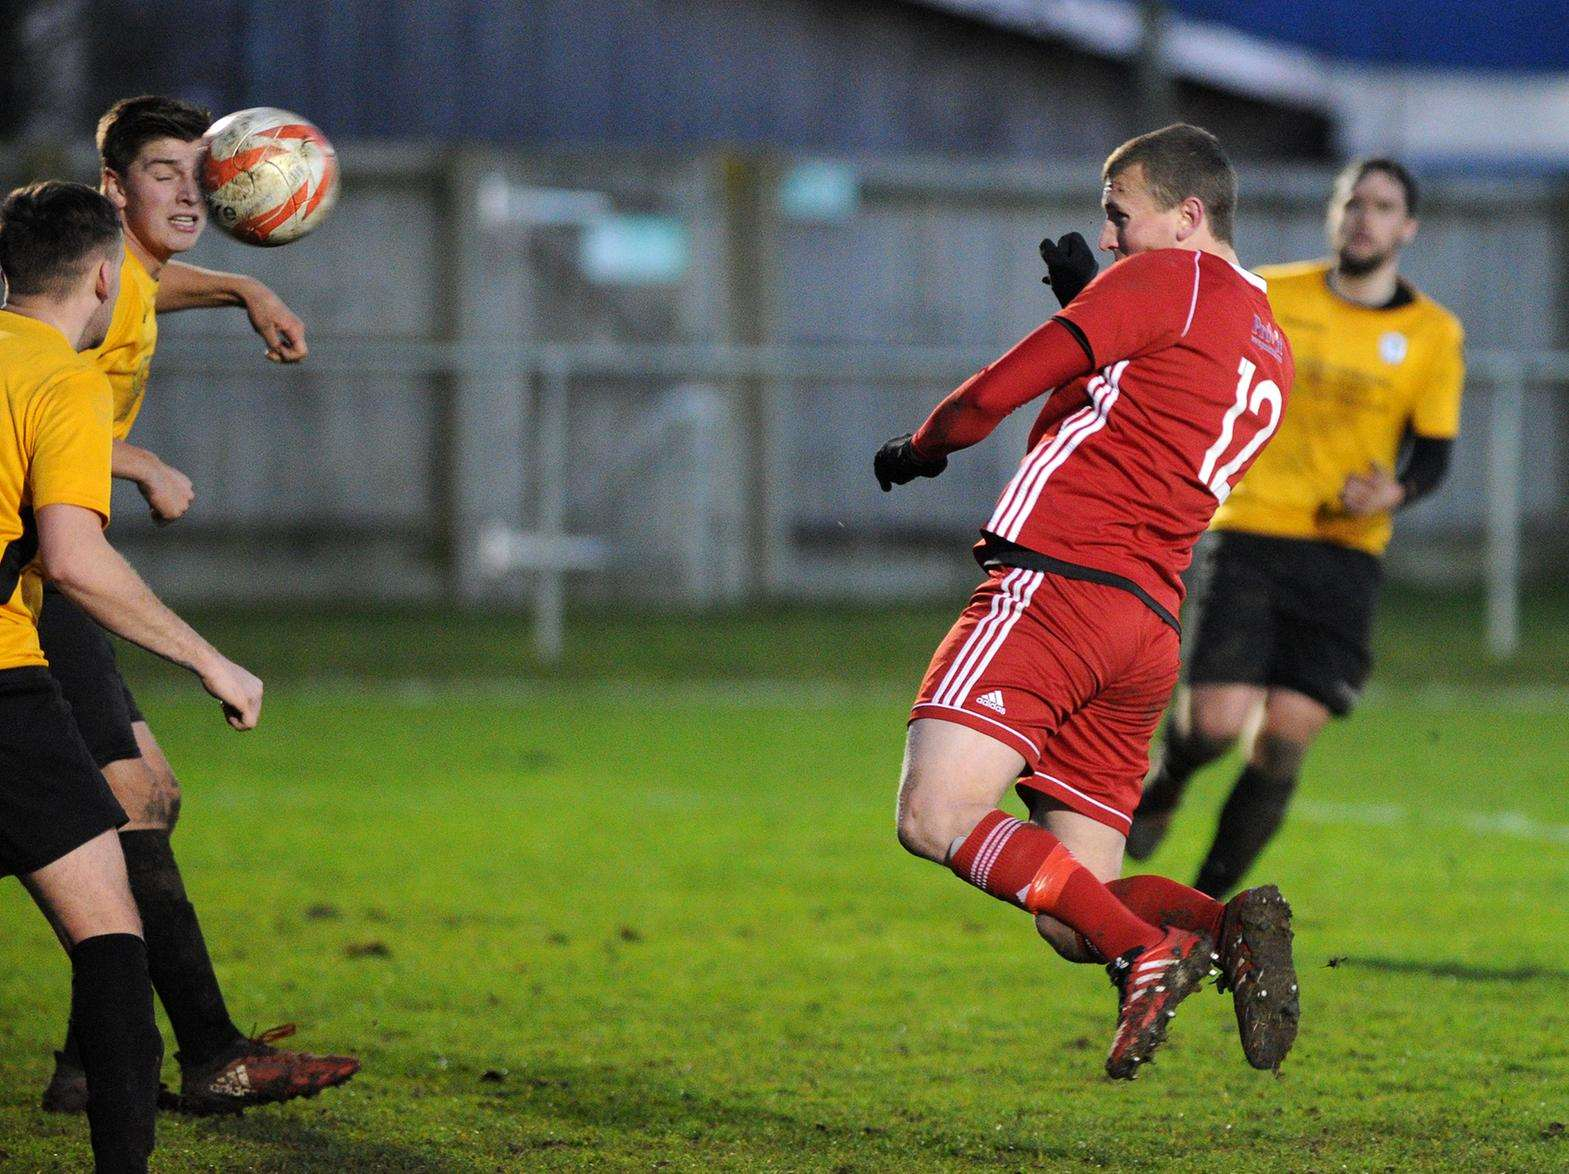 ON TARGET: Jordan Palmer scoring from a header for Haverhill Rovers in their 2-1 home defeat against Fakenham Town. Picture: Mecha Morton